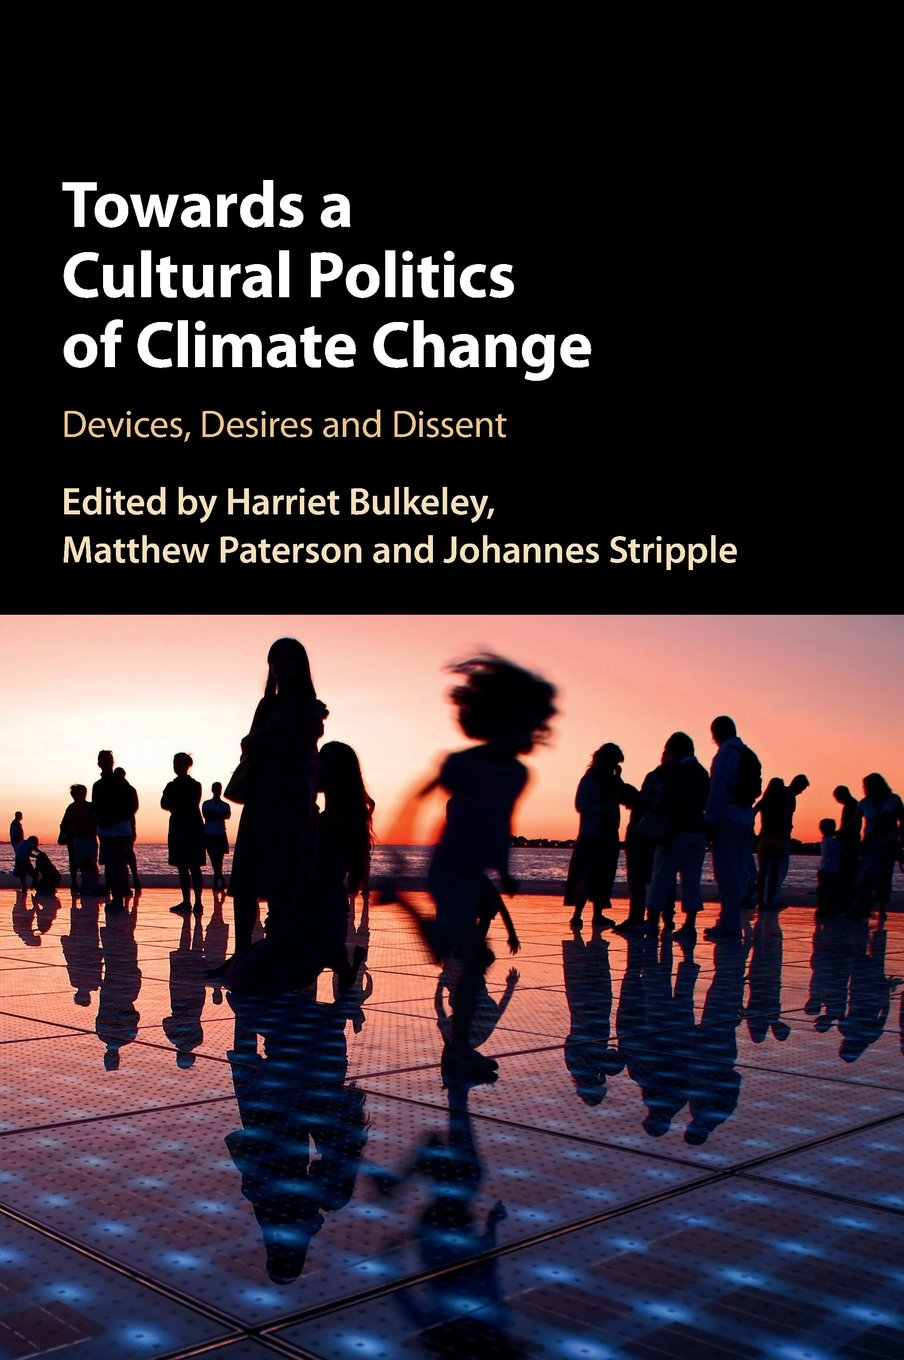 Image result for Towards a Cultural Politics of Climate Change: Devices, Desires and Dissent